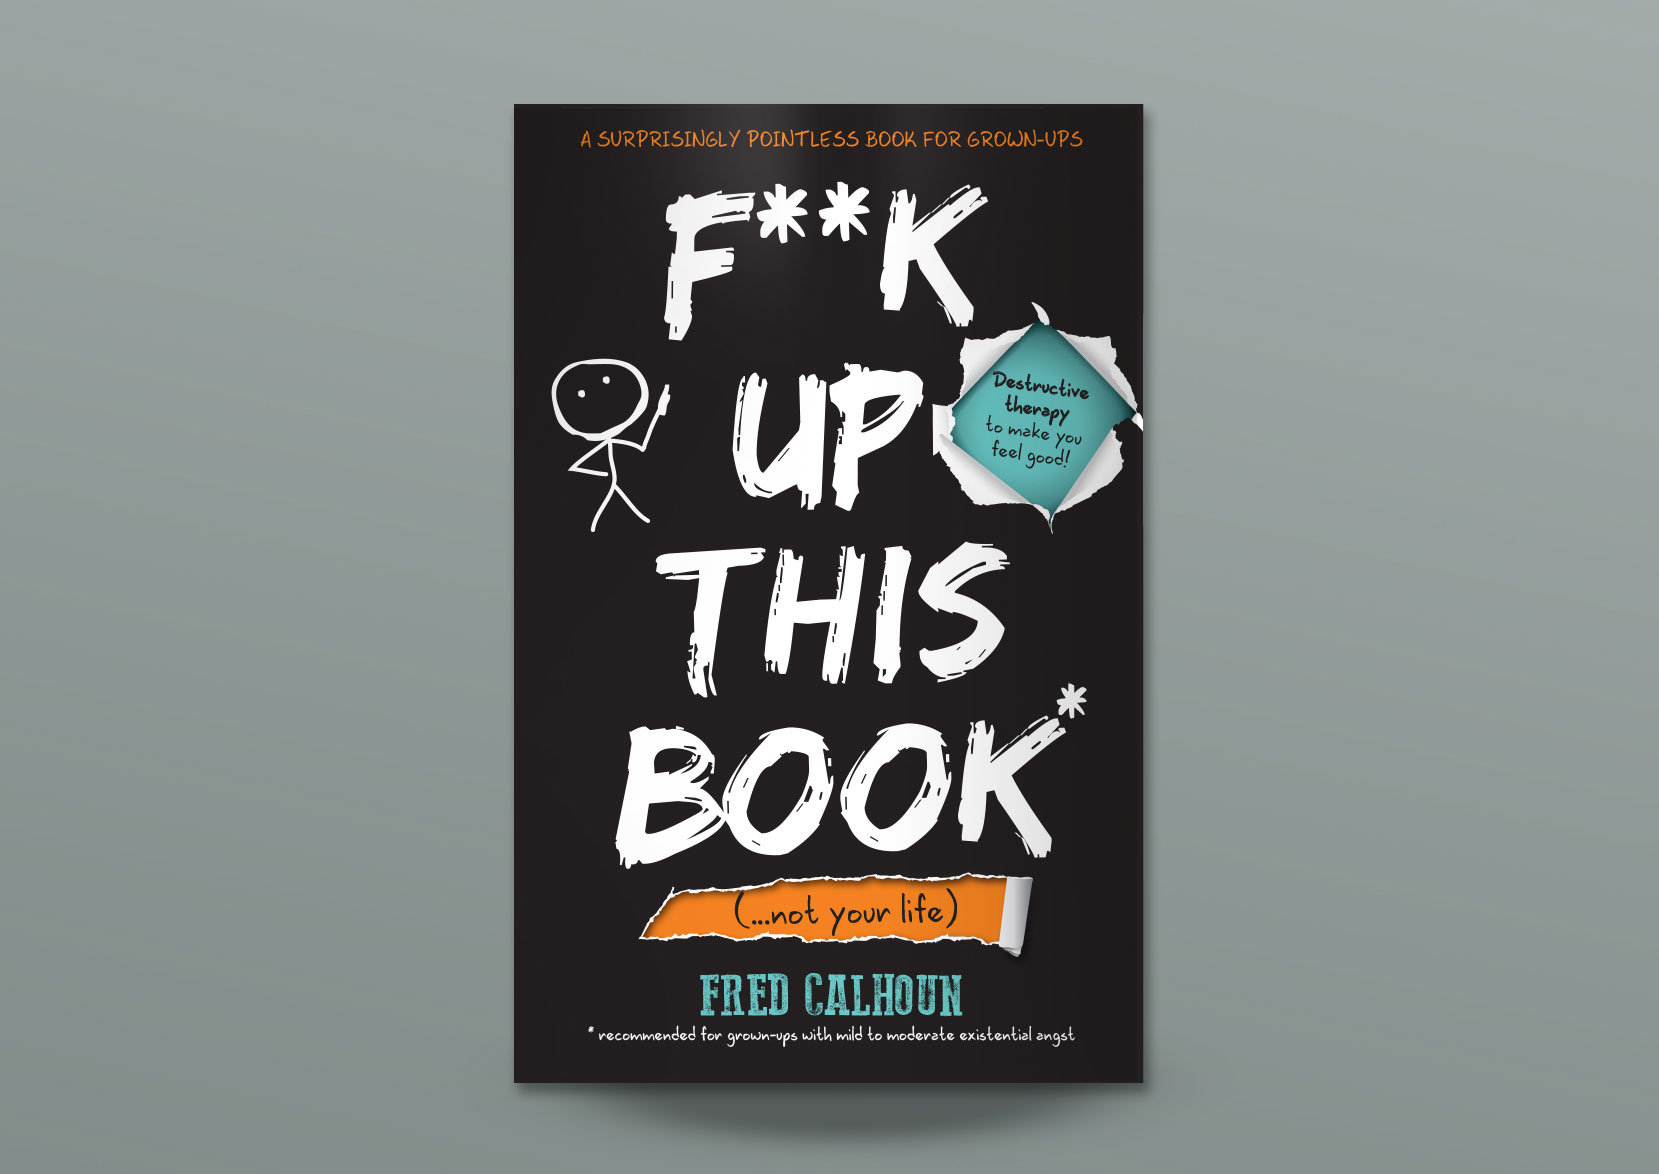 F-ck-Up-THis-Book8_richardbudddesign_web.jpg